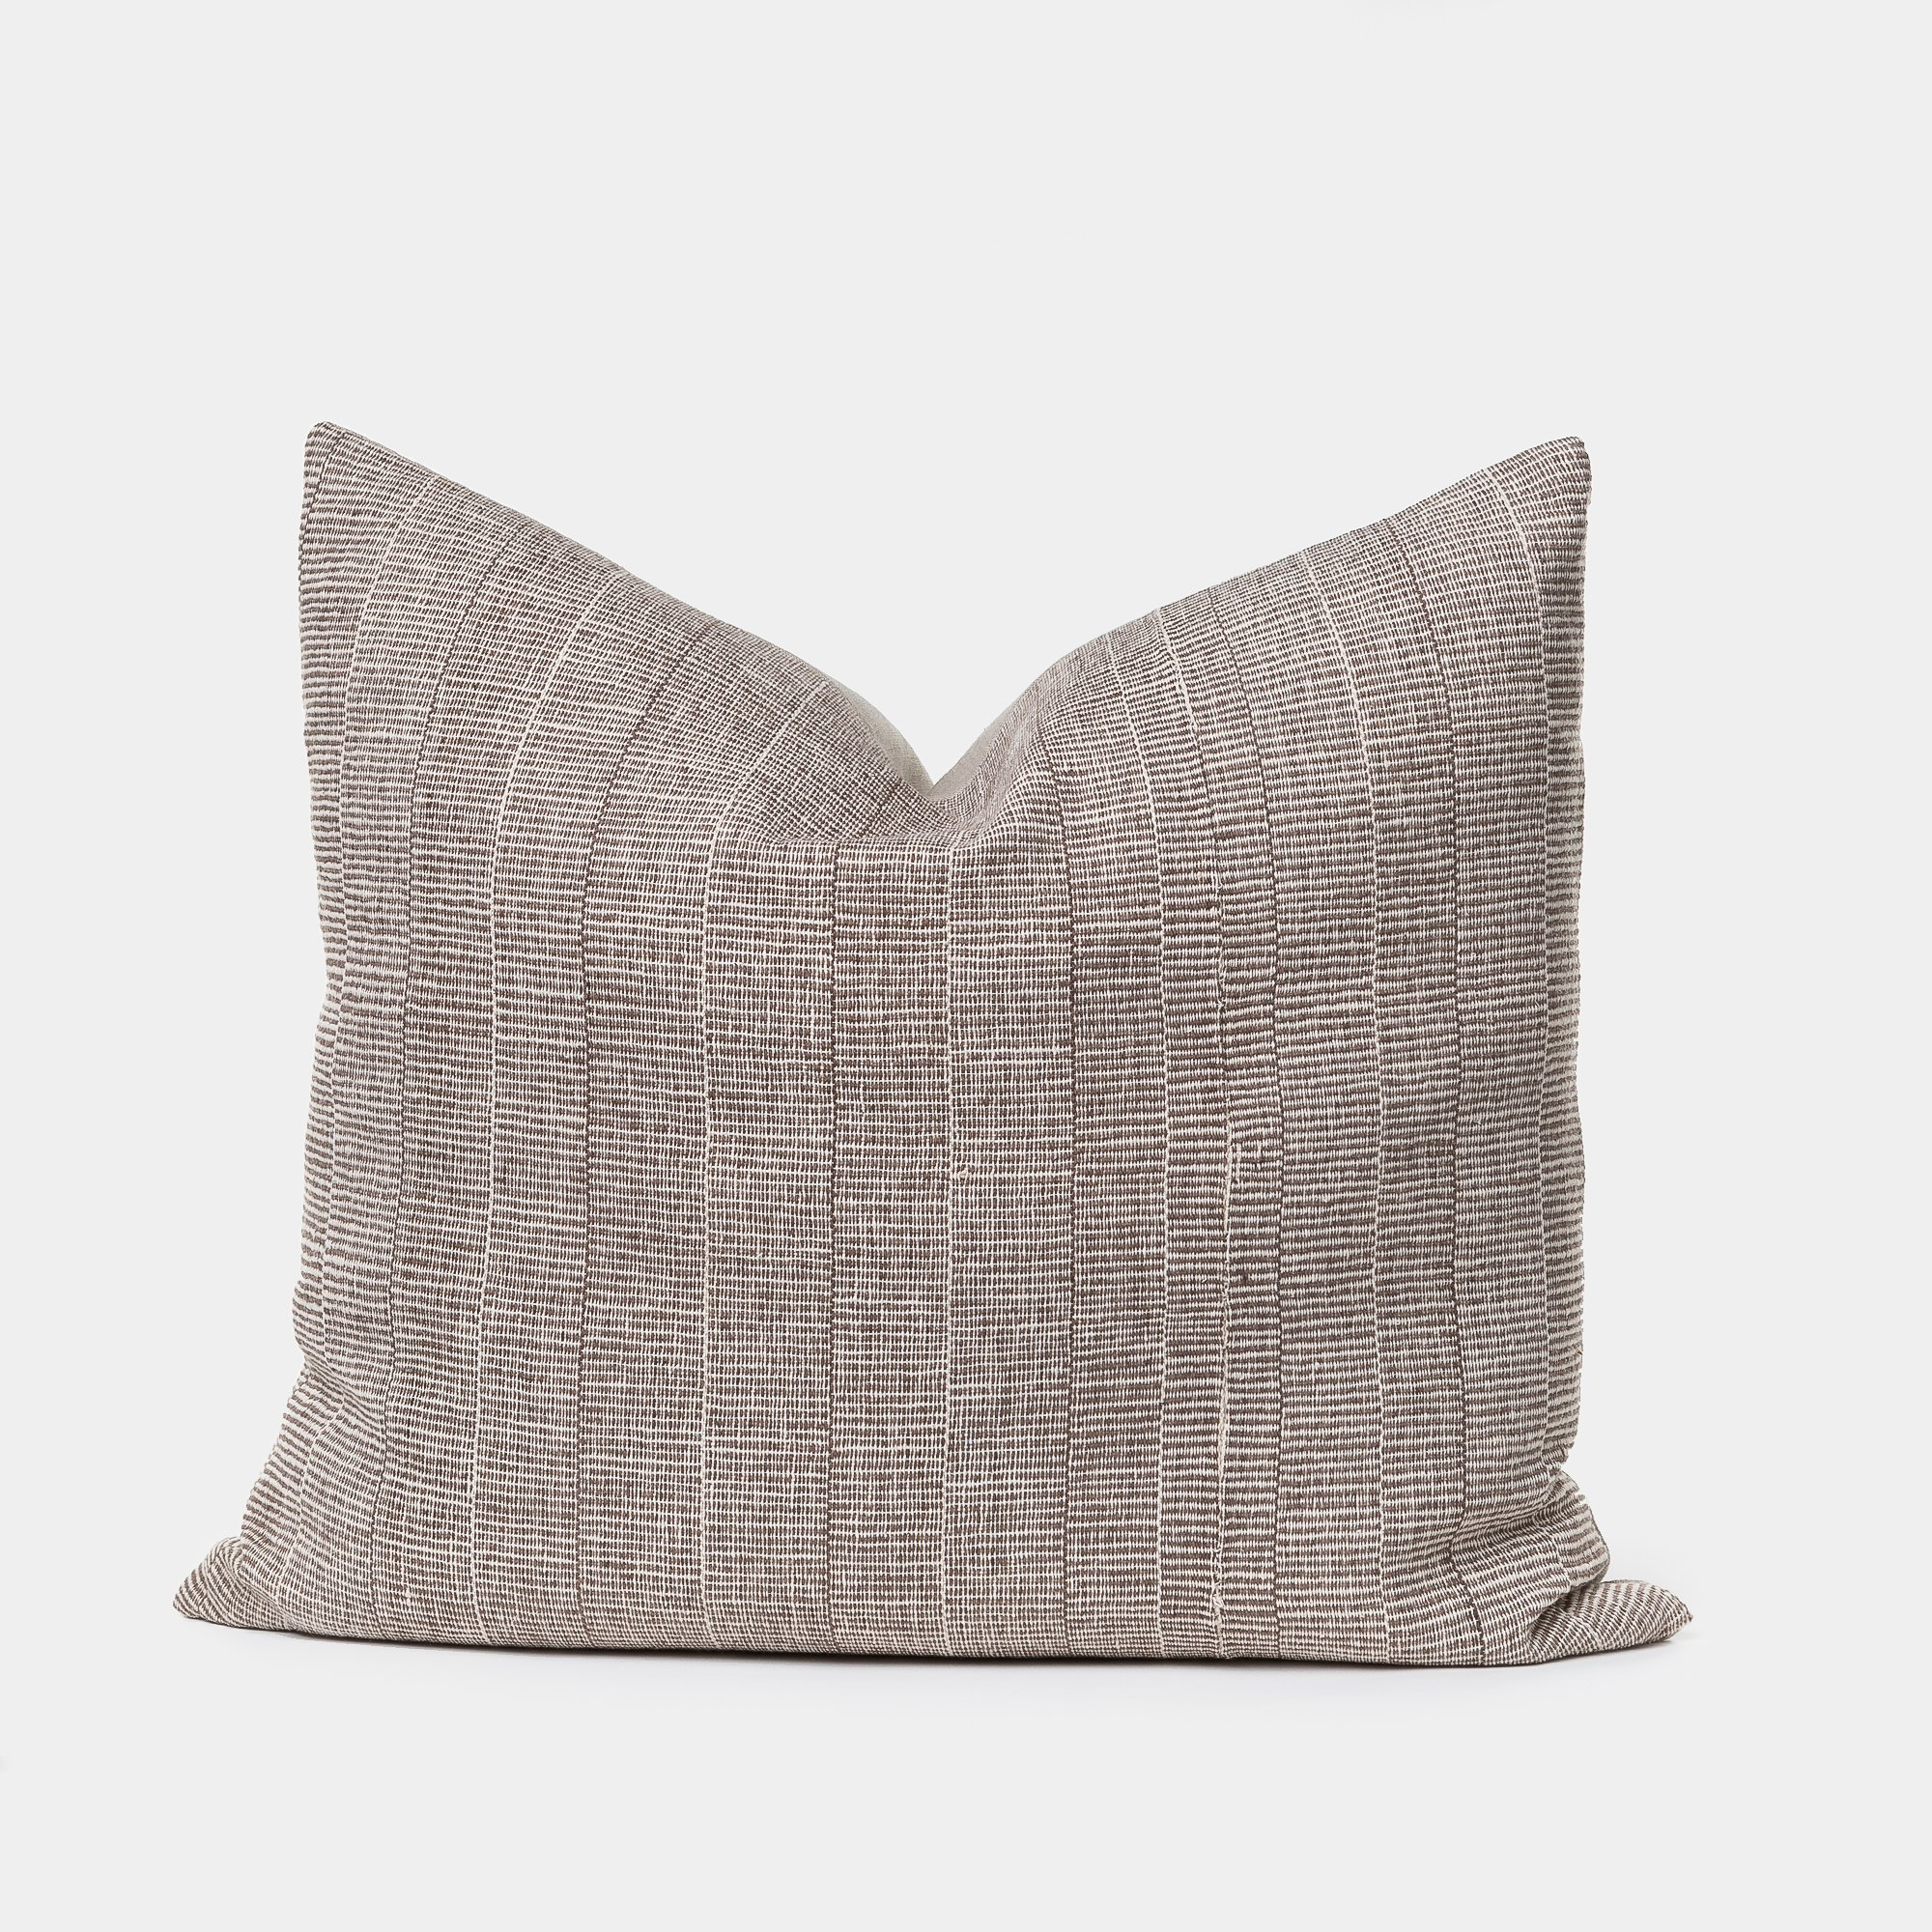 ALL-SORTS-OF-SHOPPE-ANHUR-PILLOW